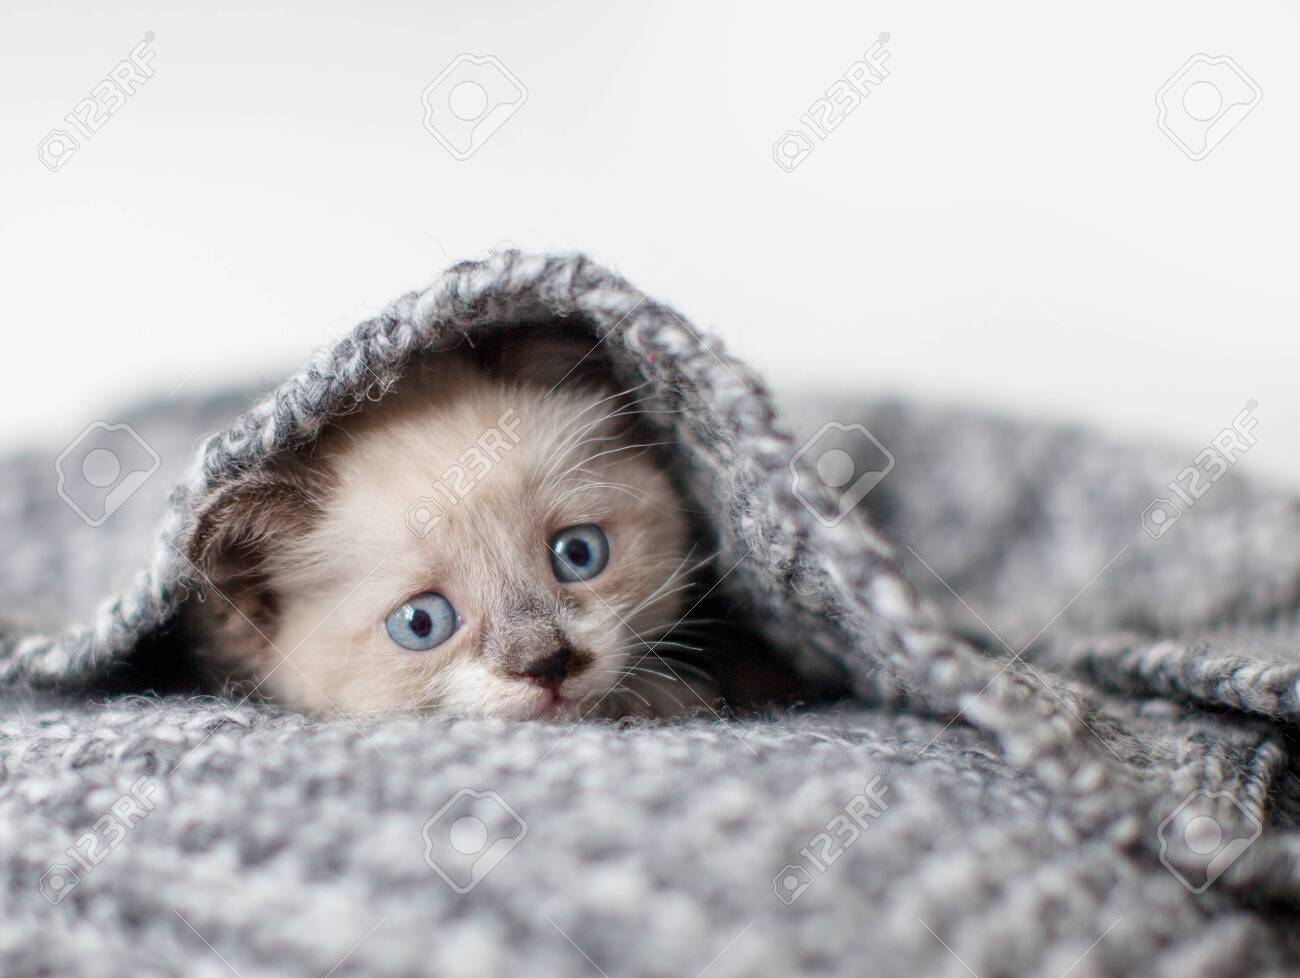 Kitten on a white knitted blanket. Little cut cat at home - 128966578